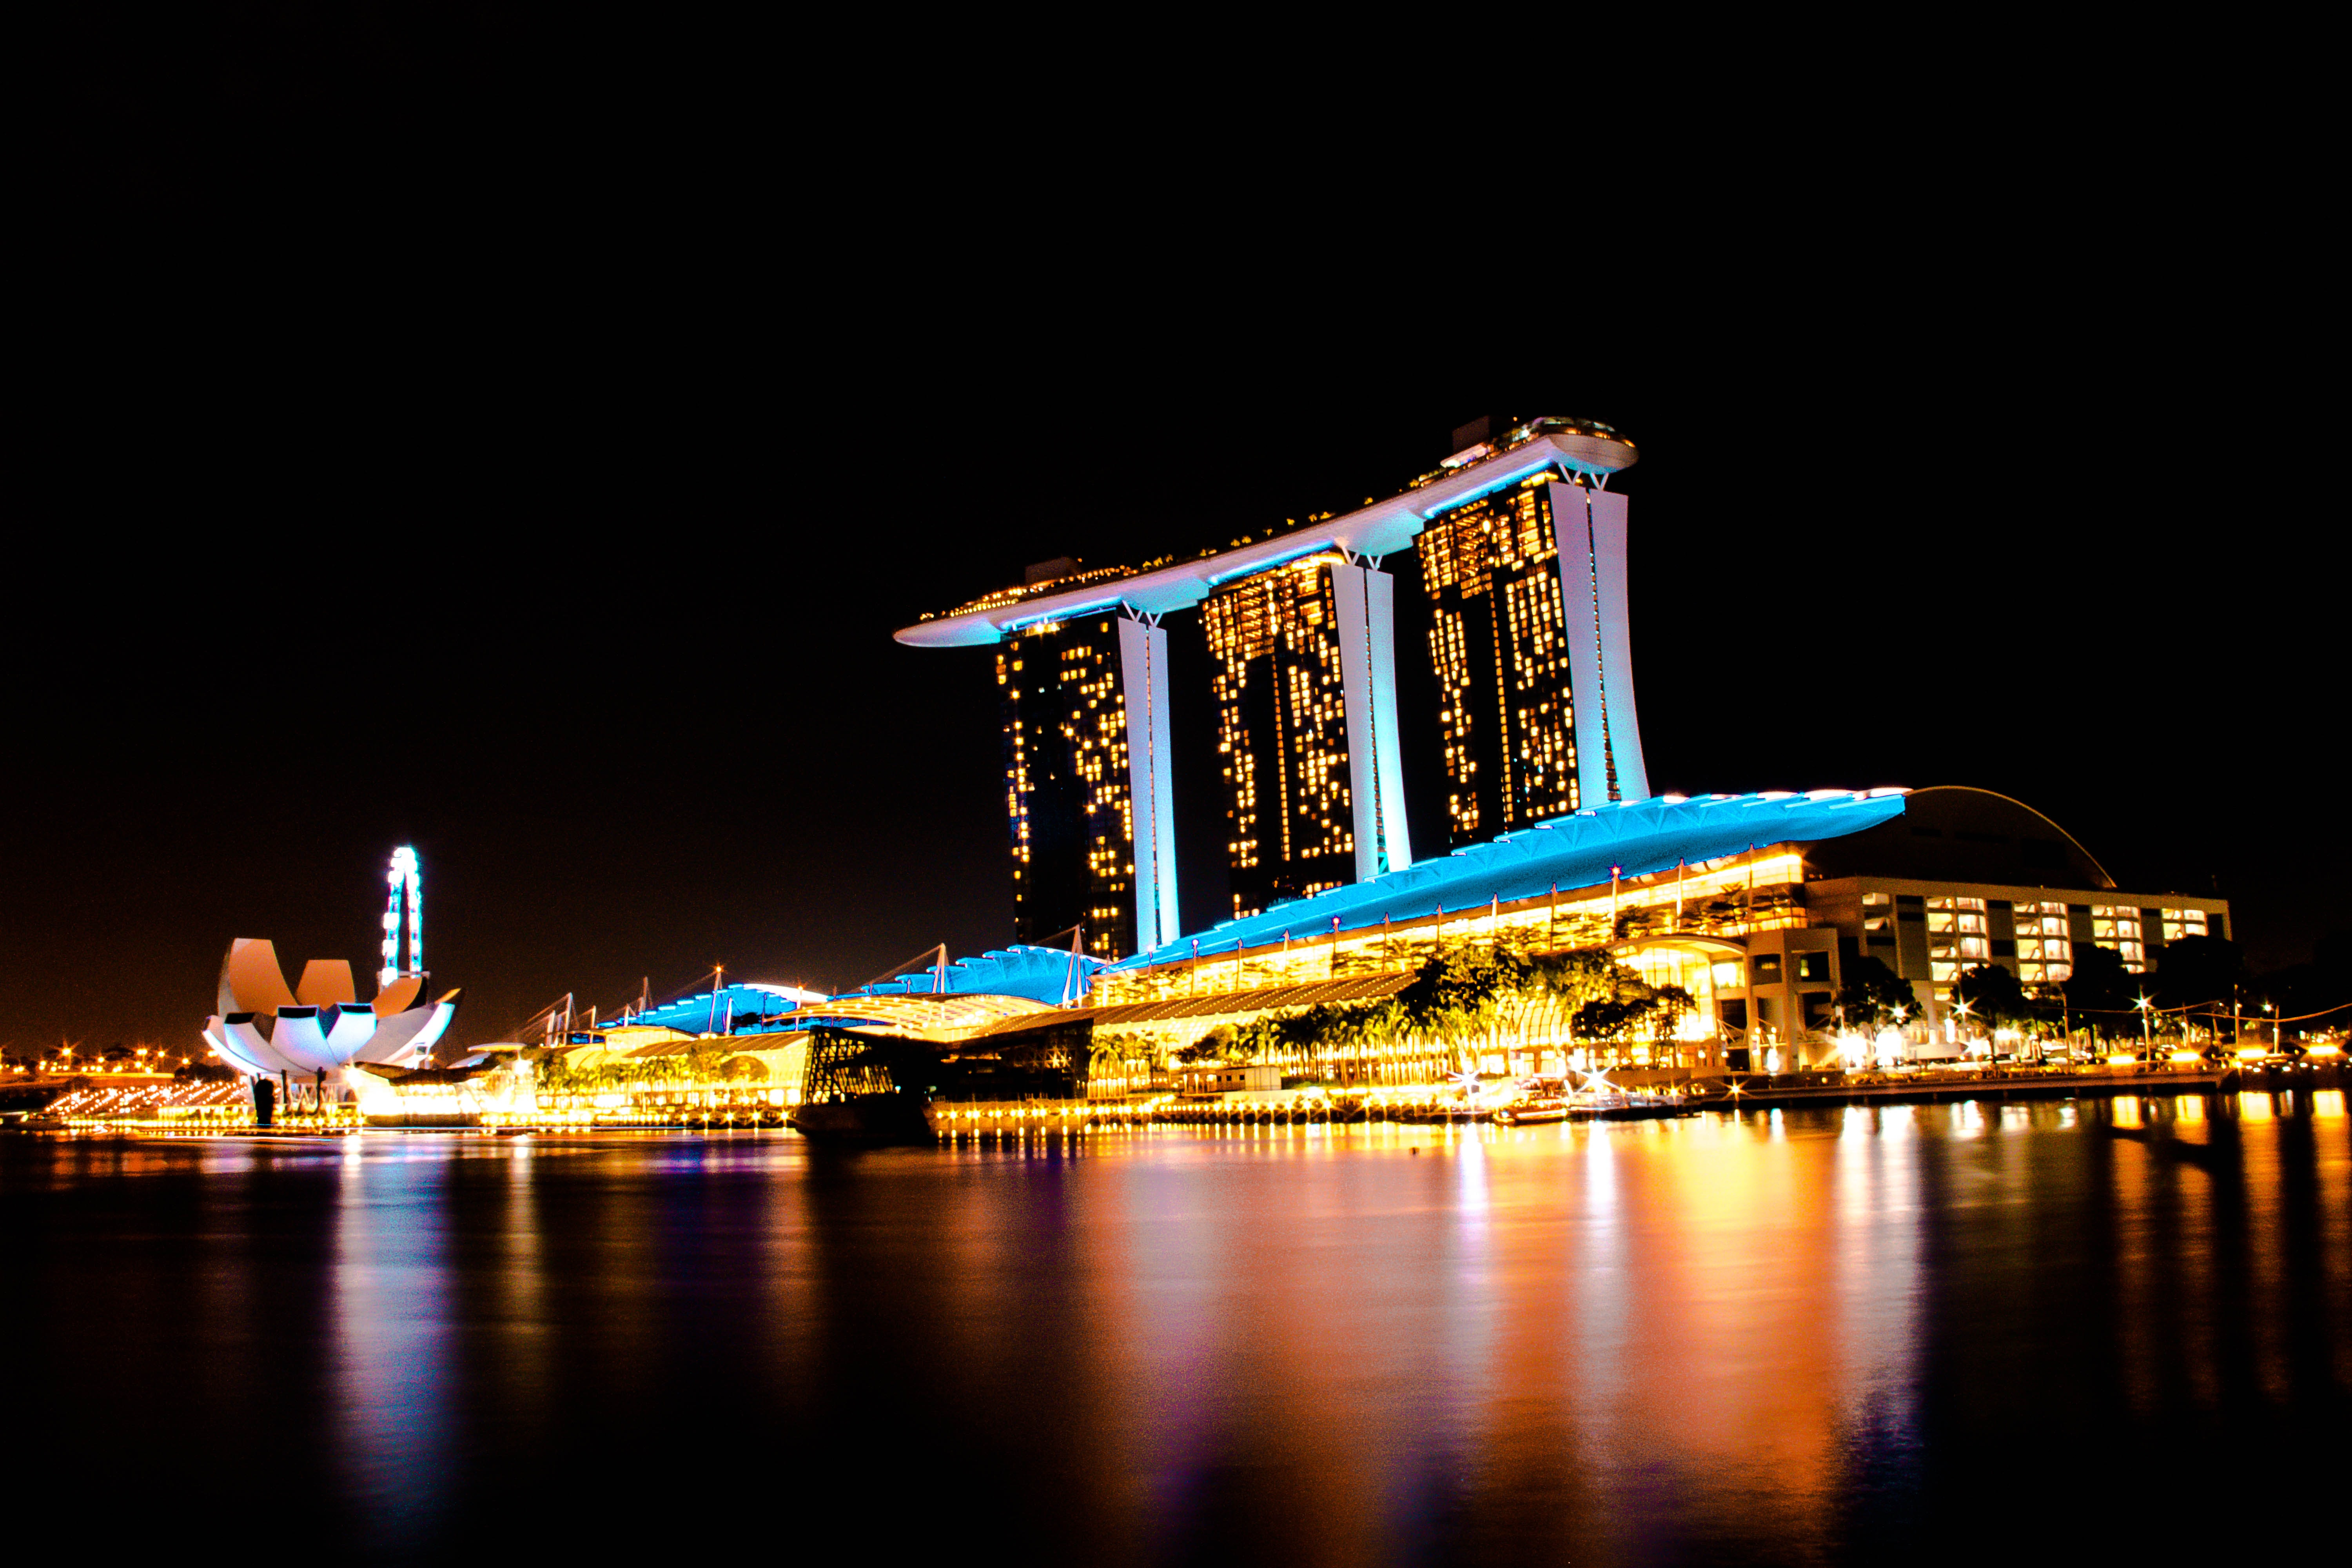 blue and yellow building fully lighted and surrounded with body of water